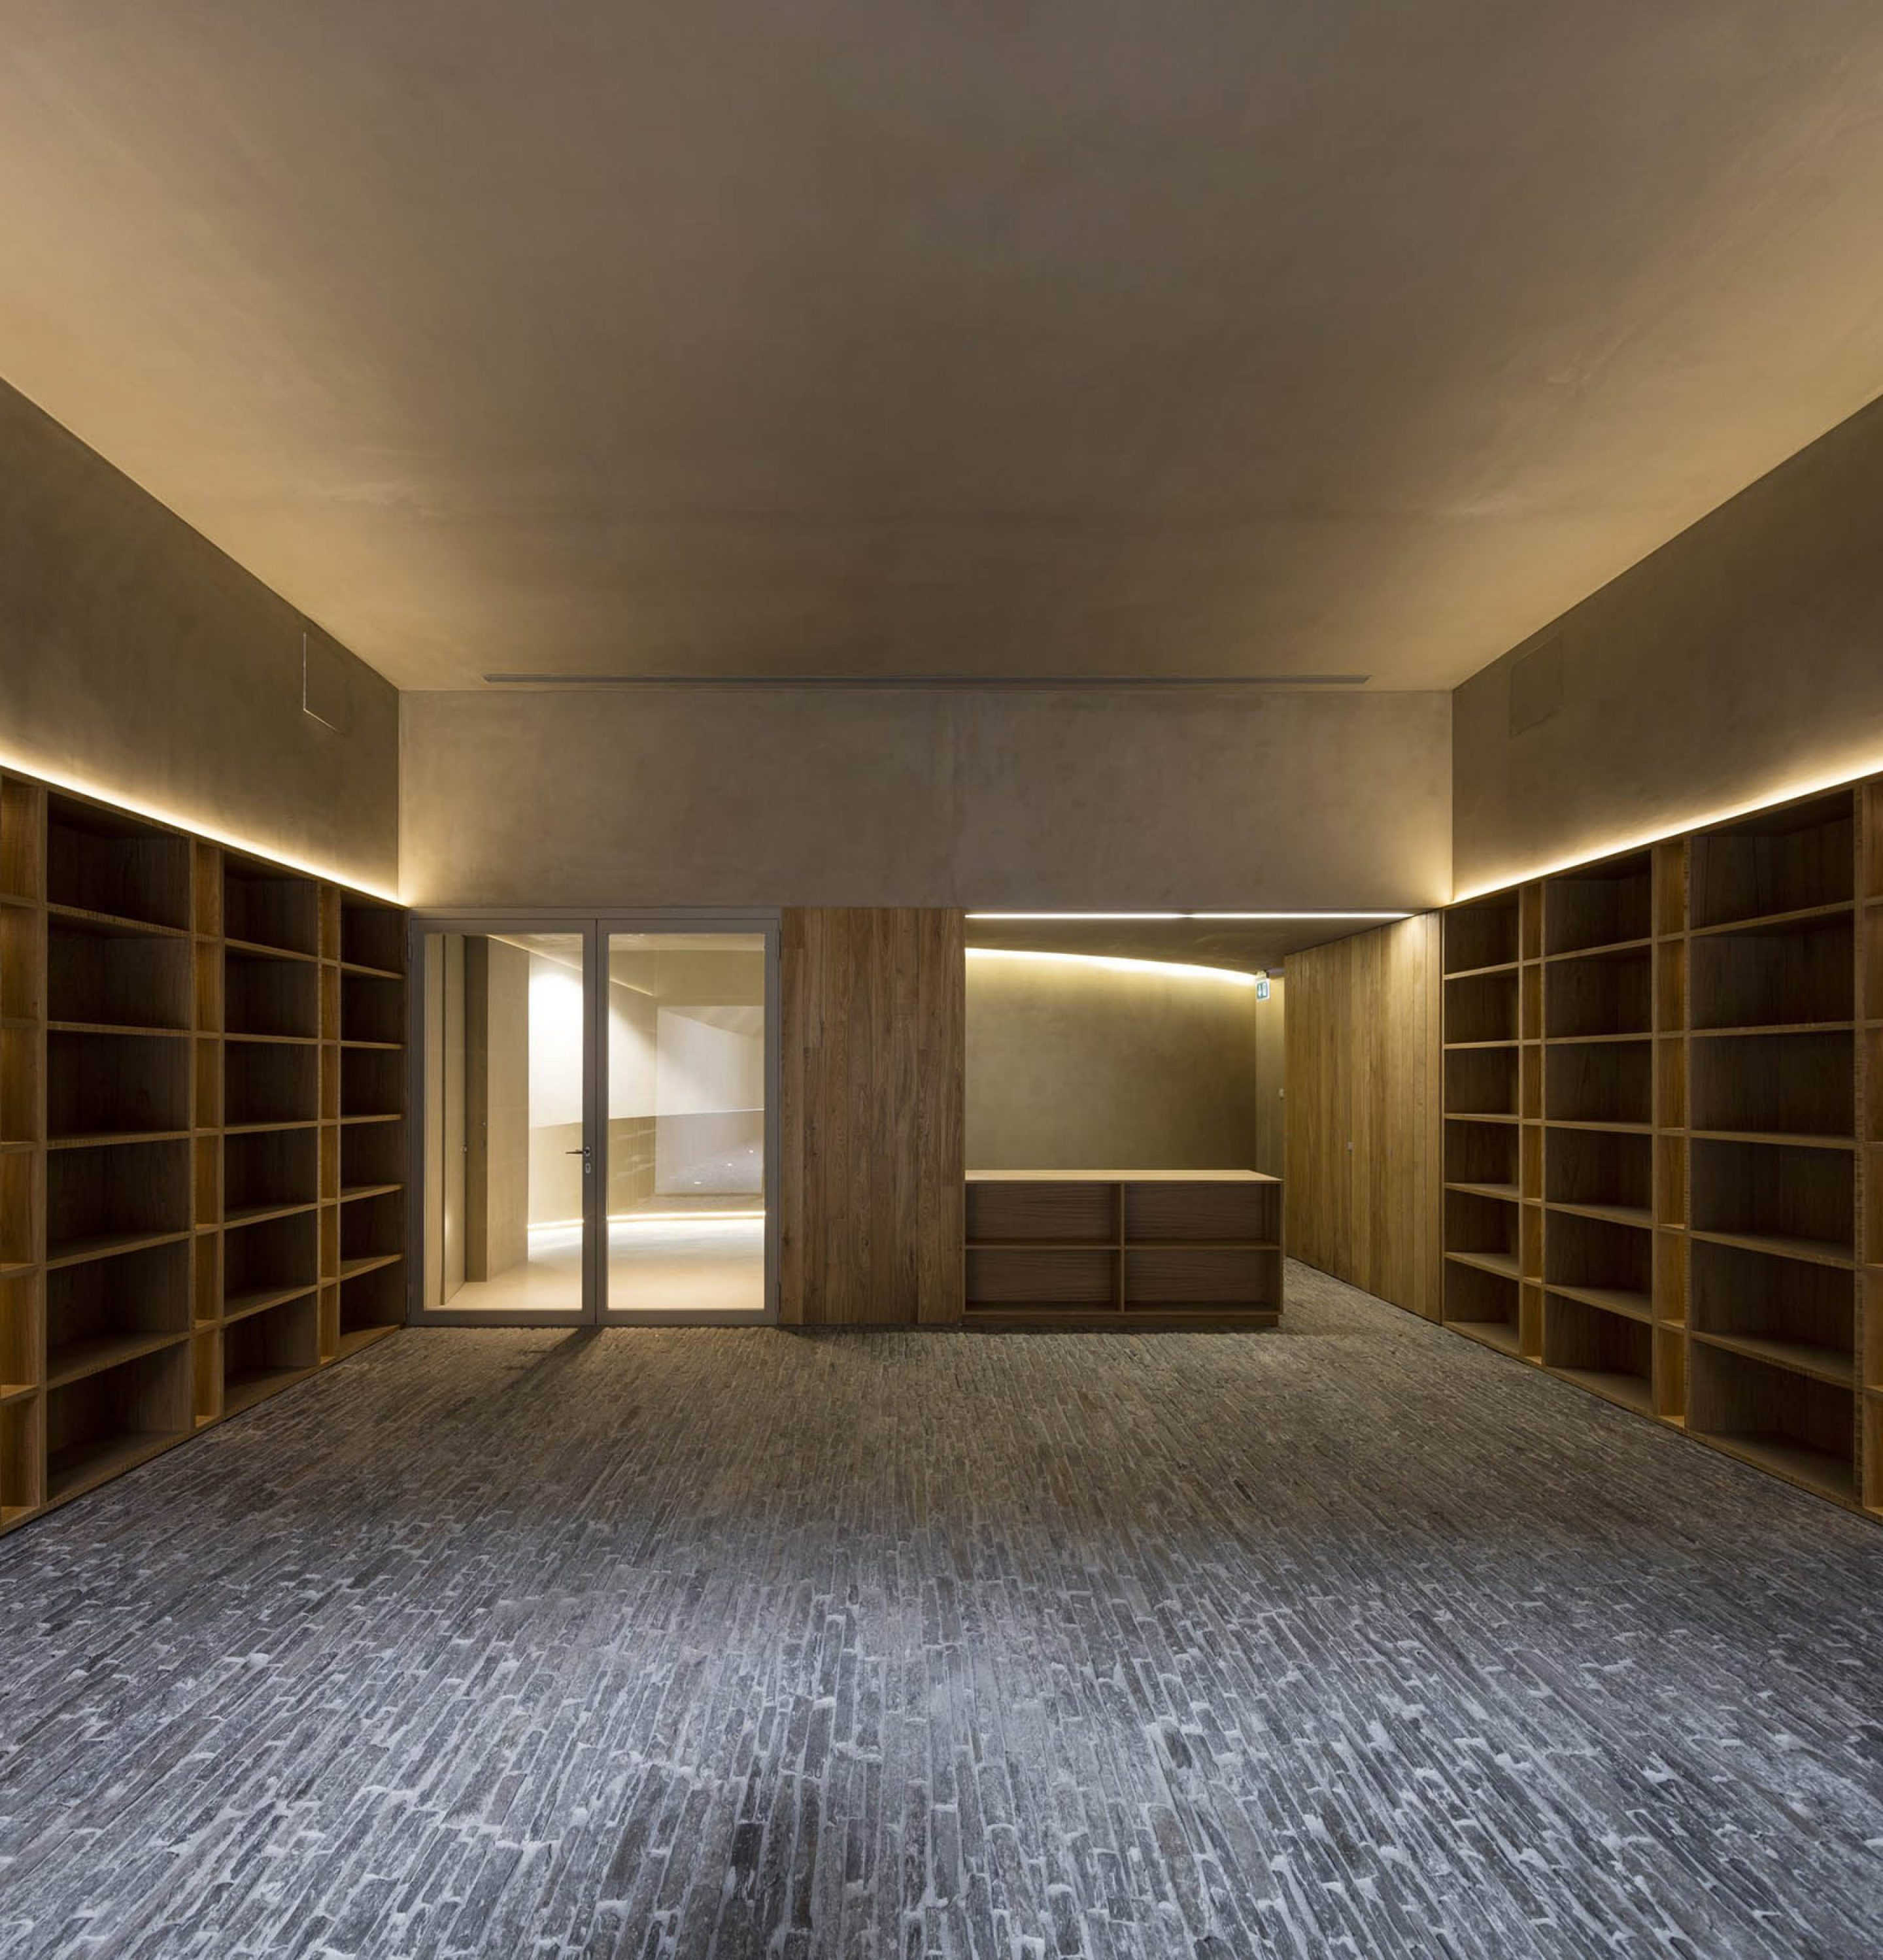 iGNANT_Architecture_Herdade_Of_Freixo_Winery_Frederico_Valsassina_Arquitectos_p